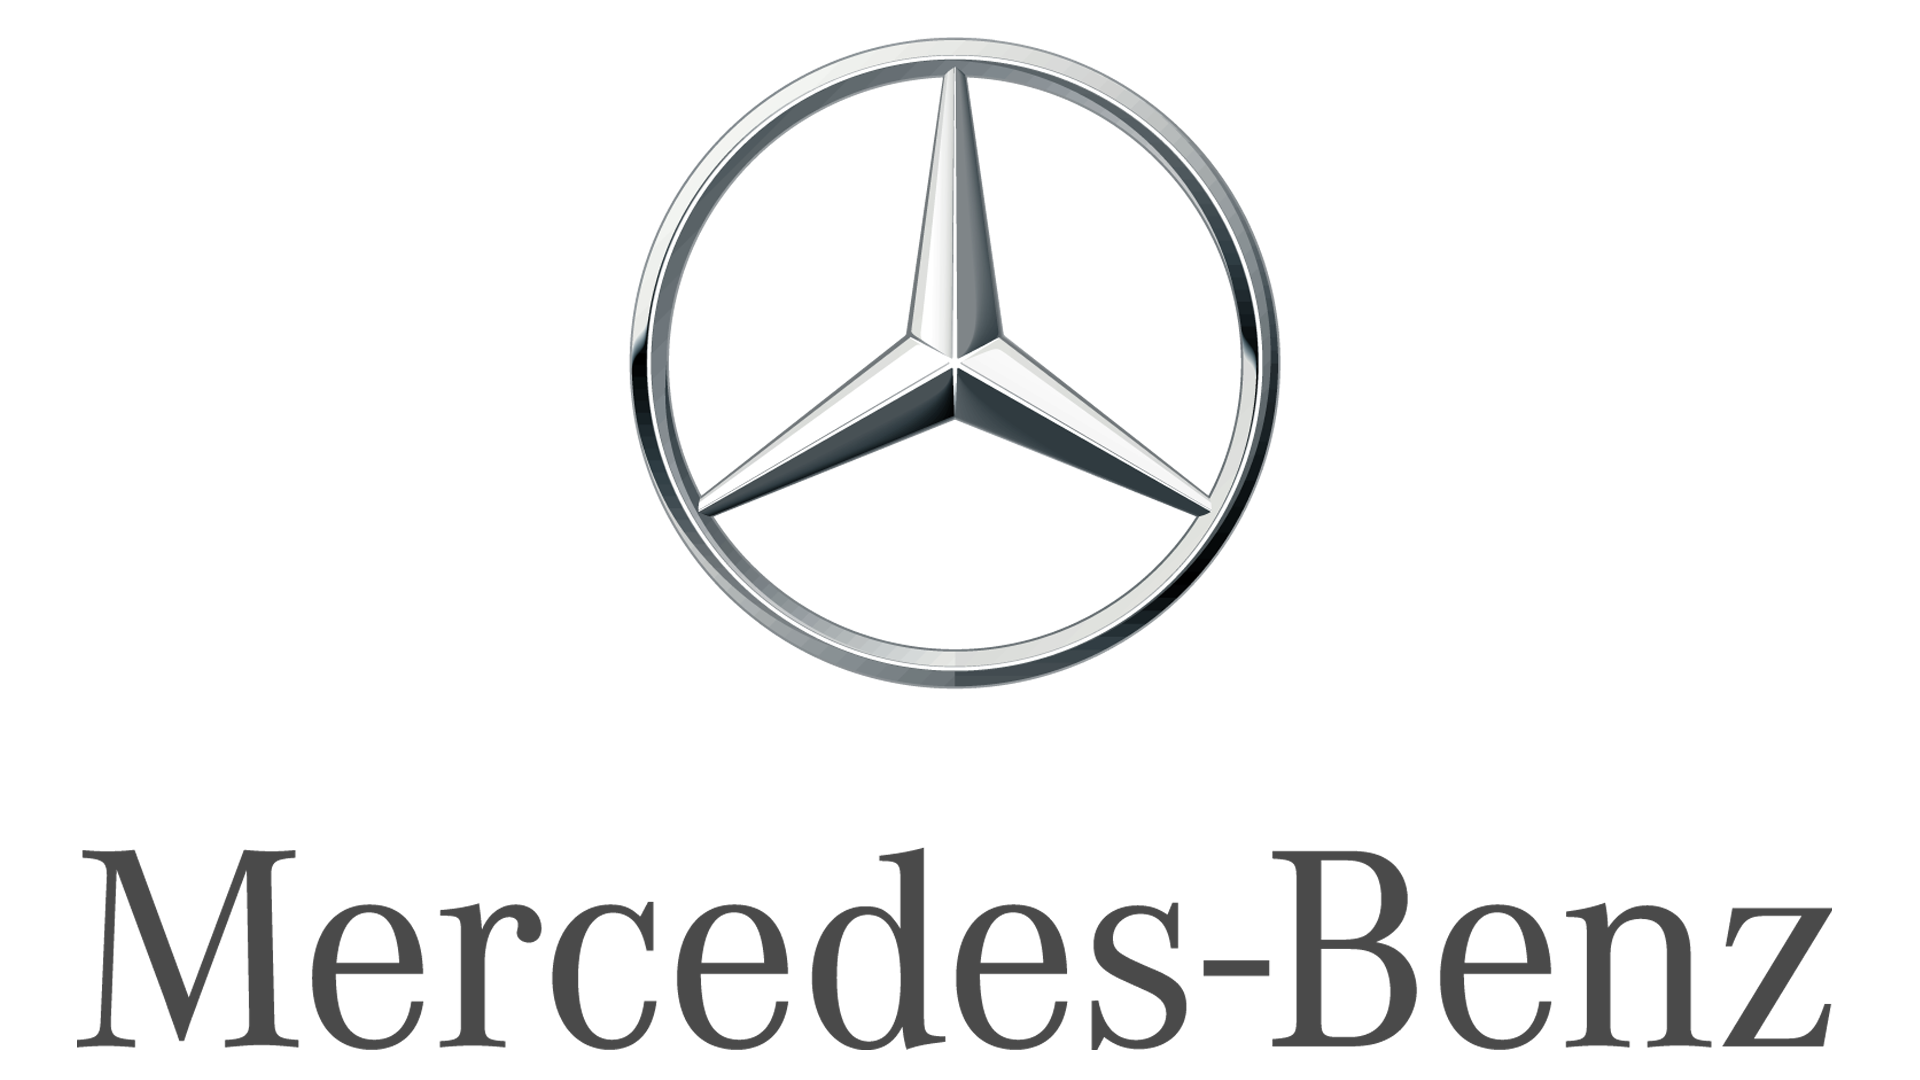 Mercedes logo and symbol, meaning, history, PNG